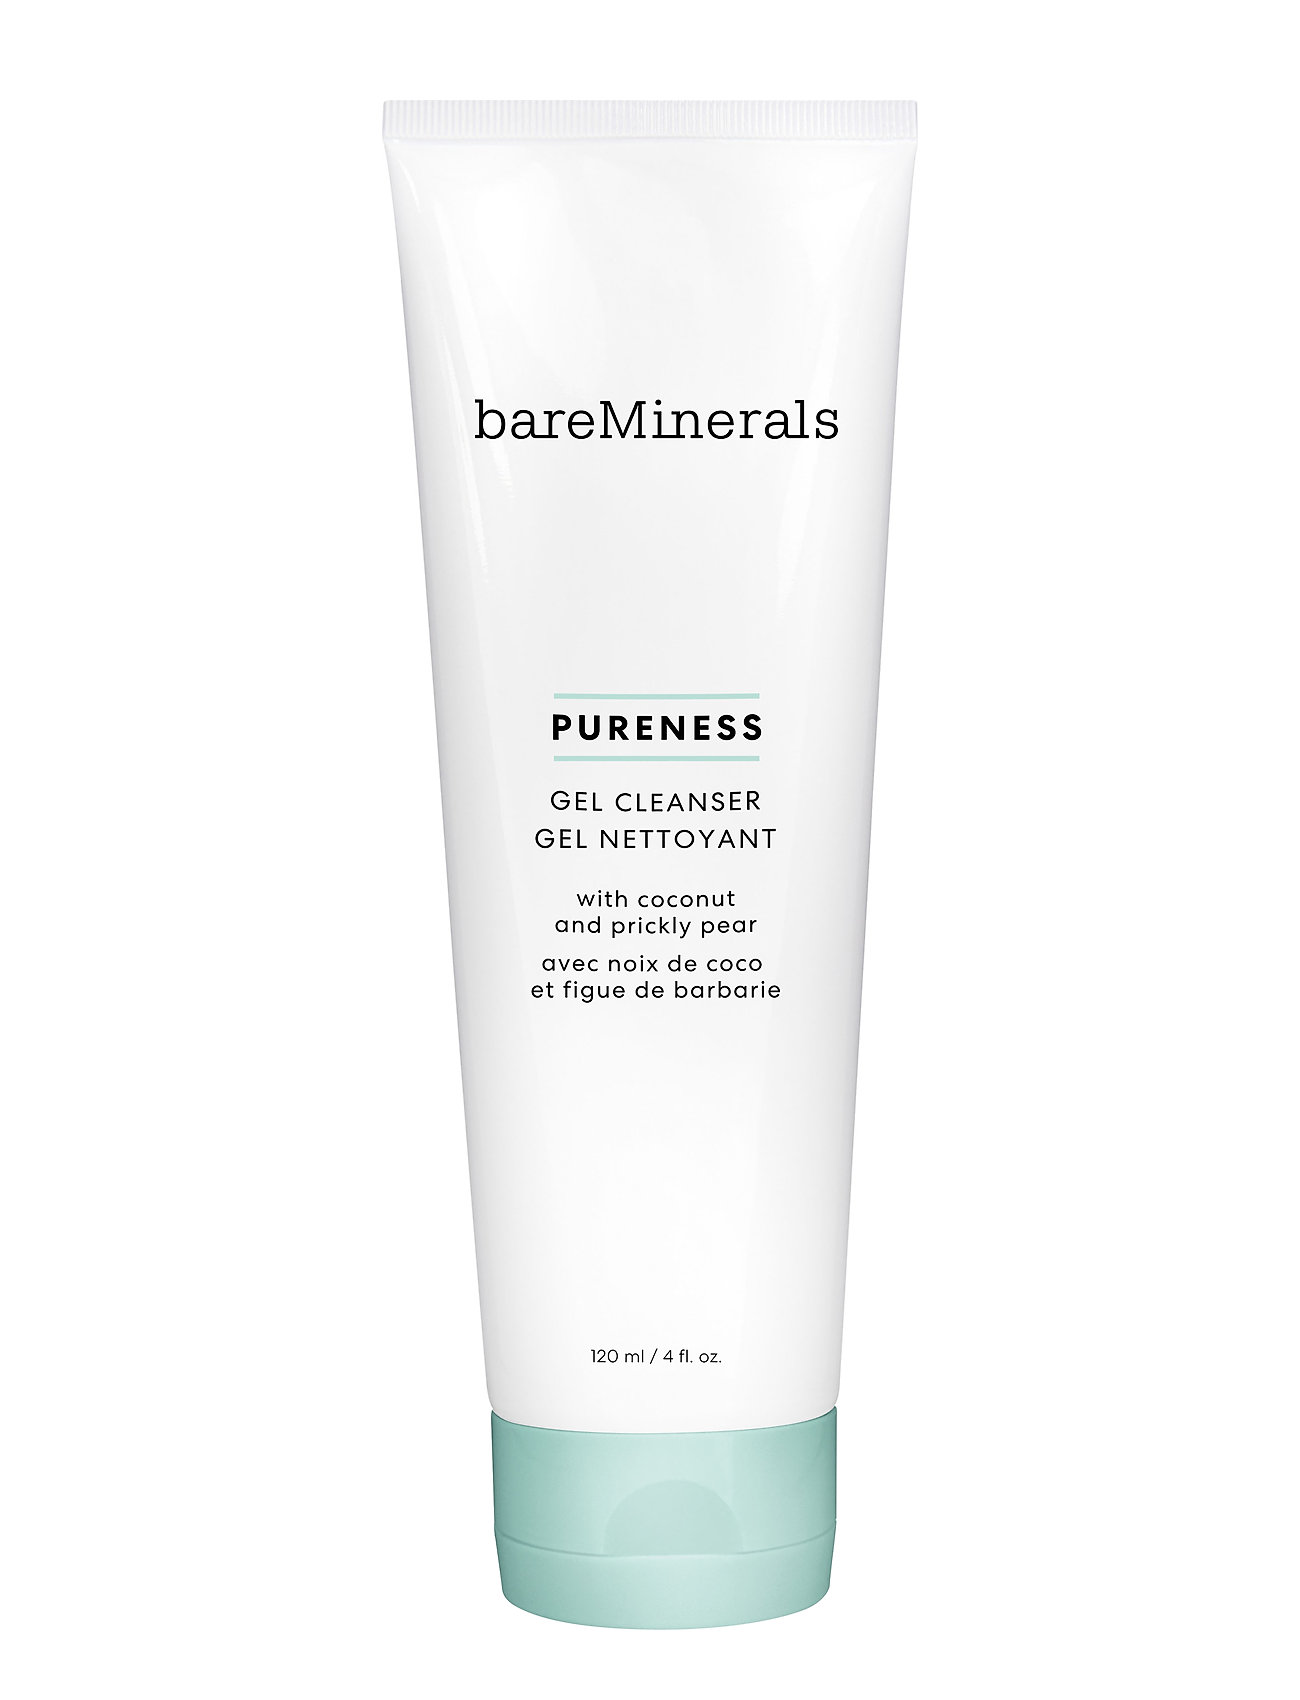 Image of Pureness Gel Cleanser Beauty WOMEN Skin Care Face Cleansers Cleansing Gel Nude BareMinerals (3351891761)